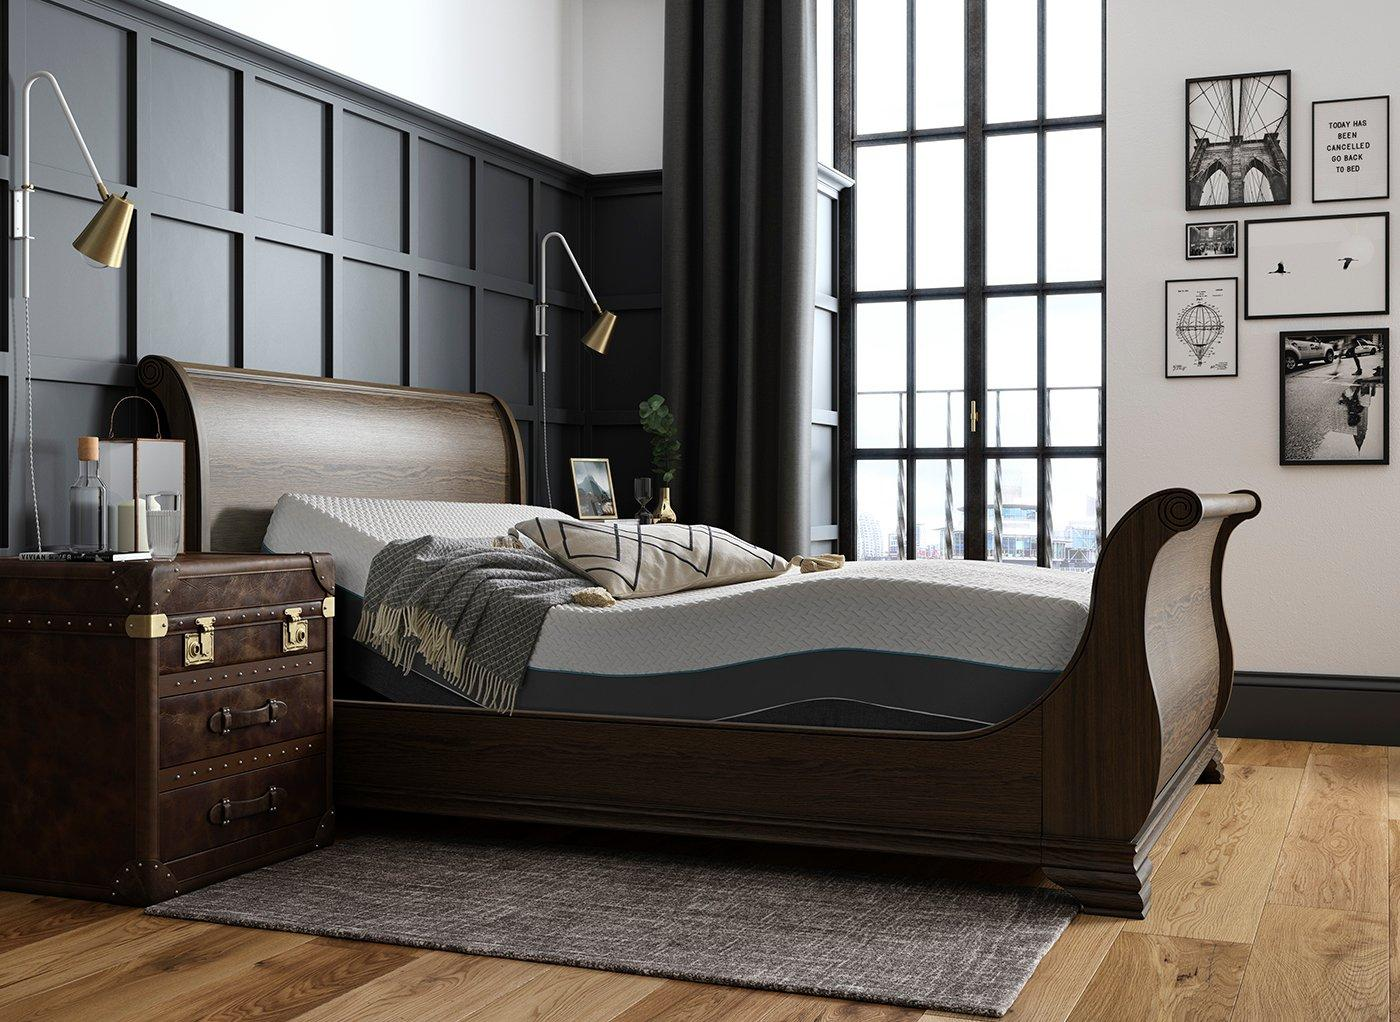 Dreams Otis Sleepmotion 200i Adjustable Wooden Sleigh Bed Frame from £758